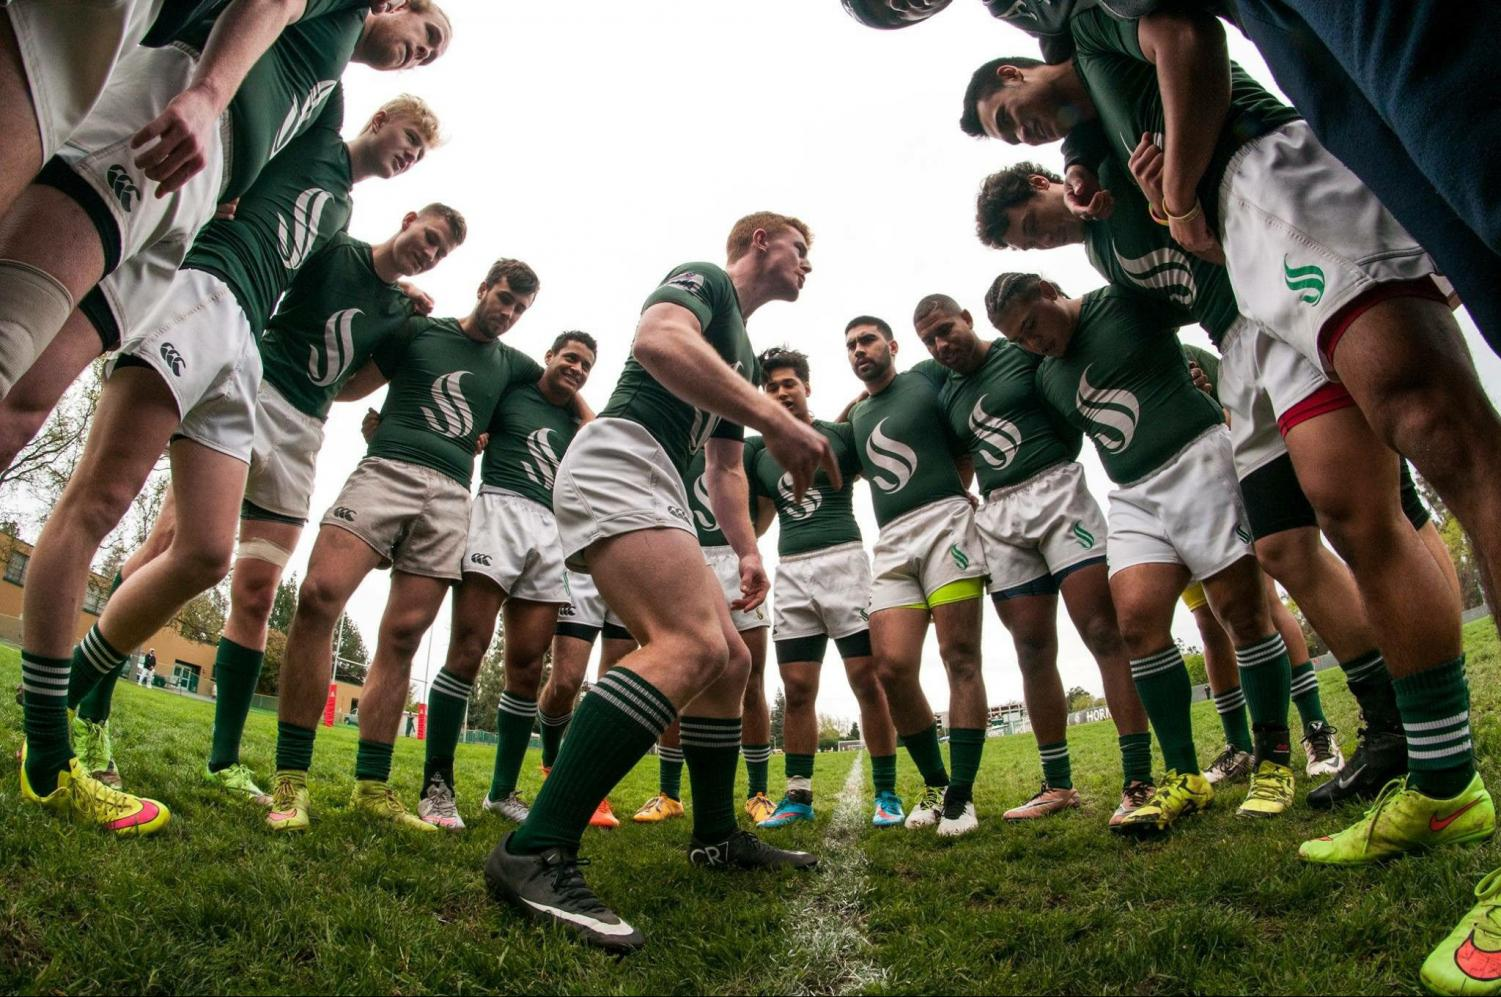 Former Sacramento State men's rugby club team captain Nick Weeder motivates his teammates before a match. The club team is currently pushing for priority registration.